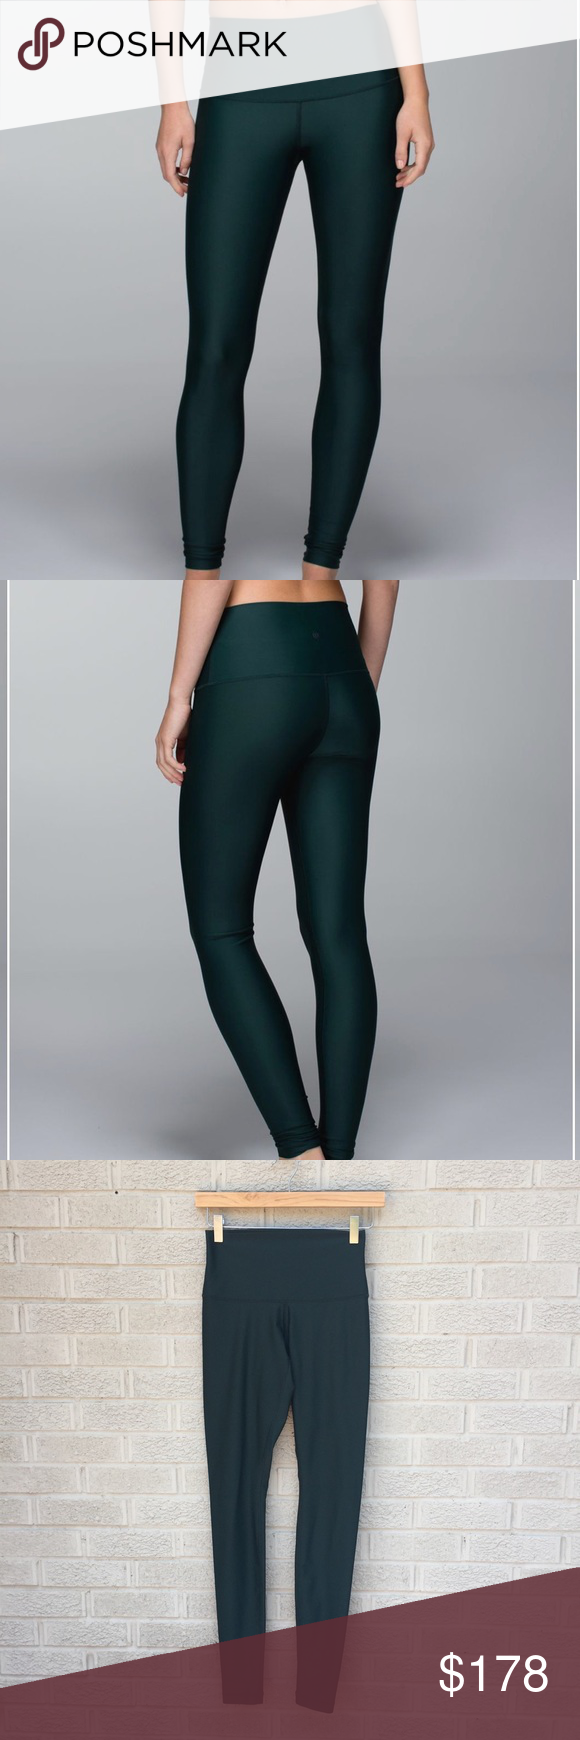 70c824eb3f Lululemon Shine Tight (Roll Down) Fuel Green Lululemon Shine Tight (Roll  Down) in Fuel Green! Love these shiny tights! Wear high or rolled down, ...